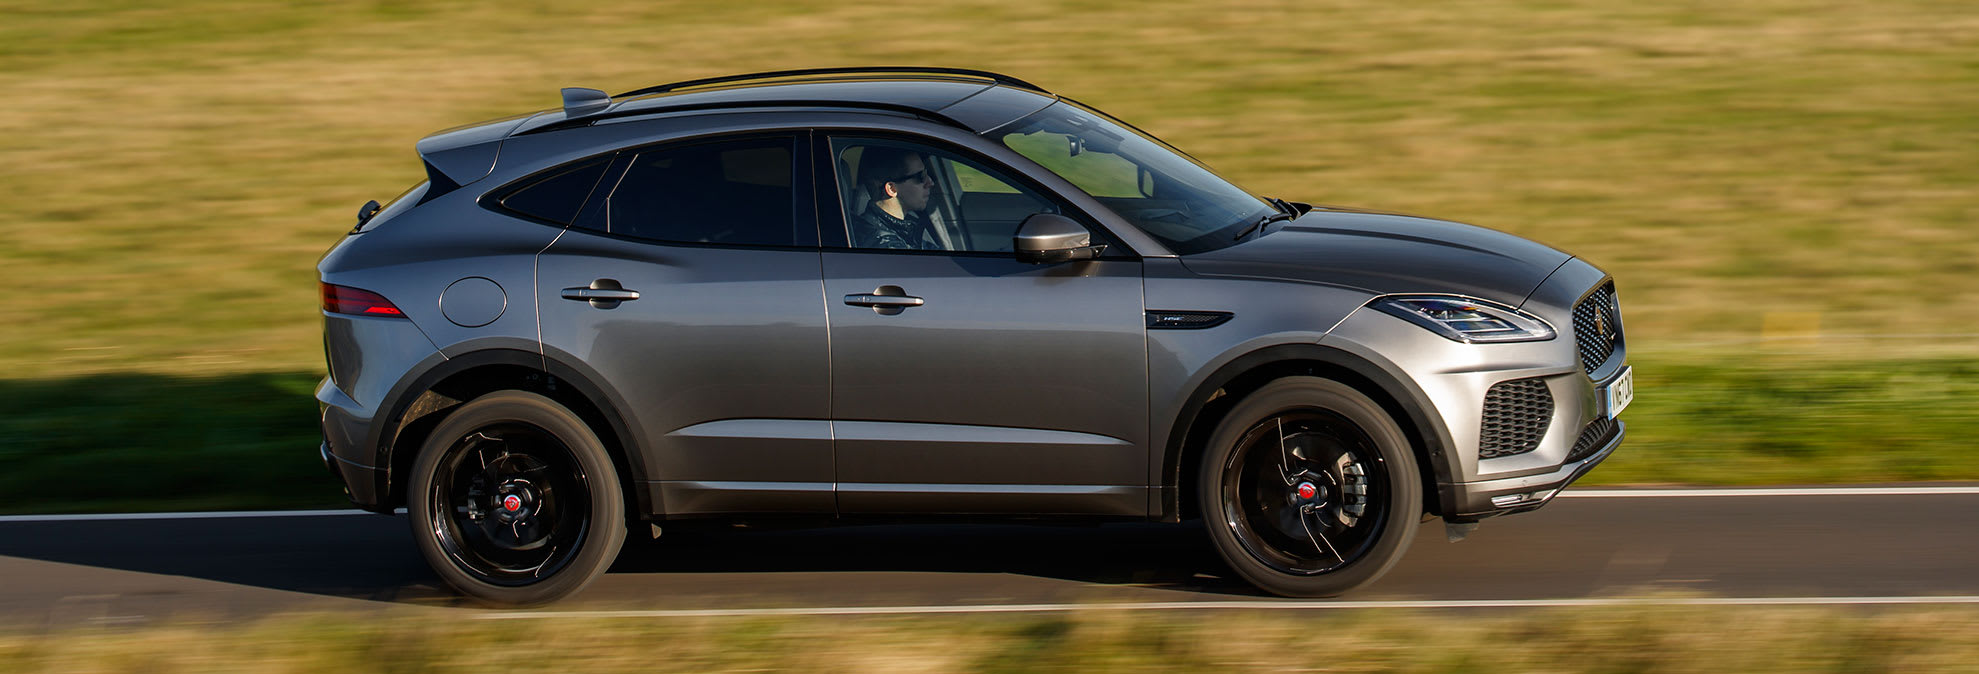 2018 jaguar e pace joins compact luxury suv party consumer reports. Black Bedroom Furniture Sets. Home Design Ideas